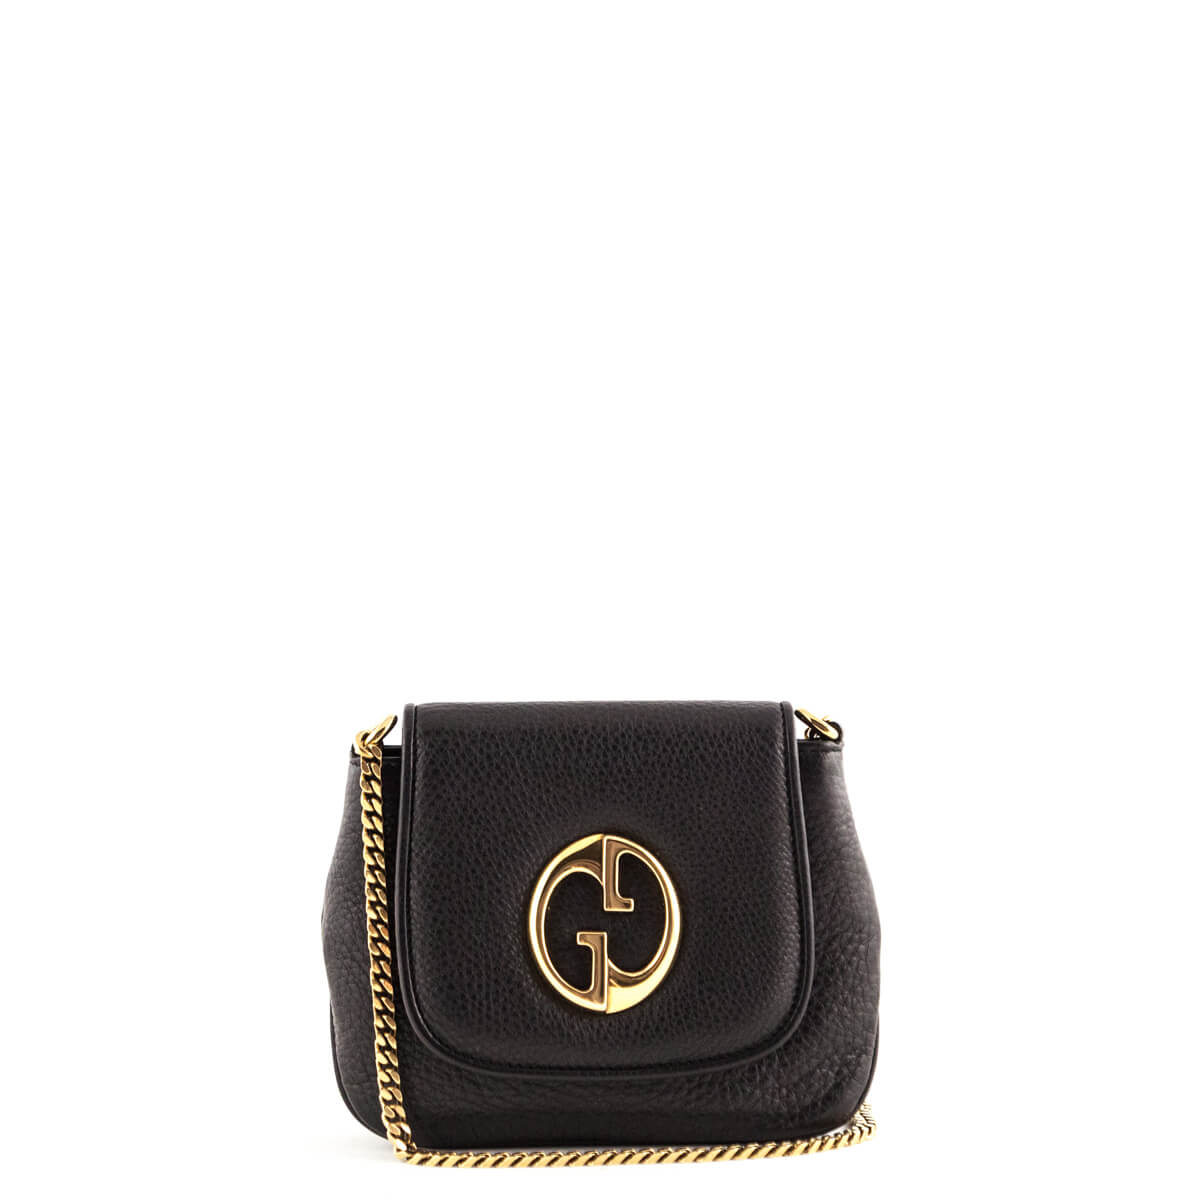 56dcb273e07 Gucci Black Mini 1973 Shoulder Bag - LOVE that BAG - Preowned Authentic Designer  Handbags ...